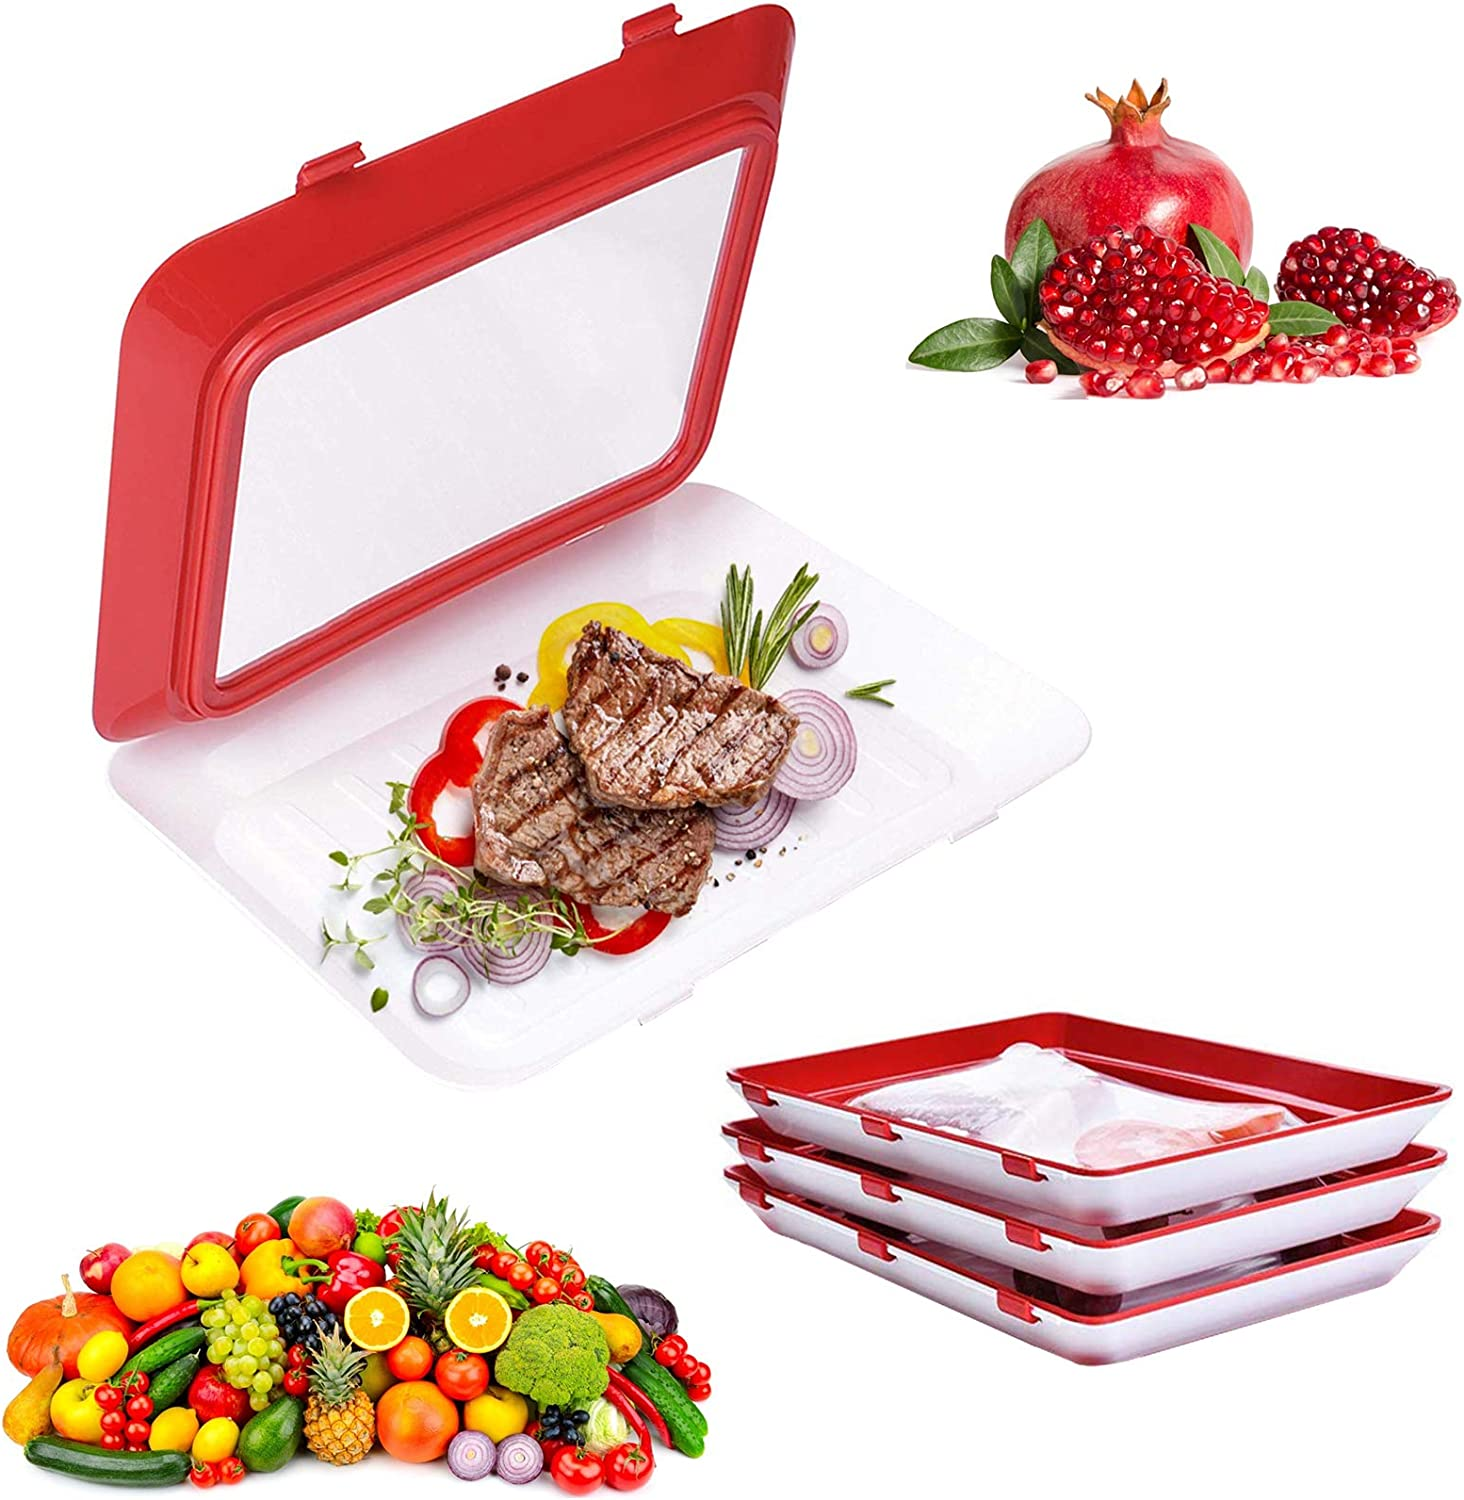 Food Plastic Preservation Tray,Reusable Creative Food Preservation Tray Stackable Food Tray to Save Refrigerator Space 4 Pack